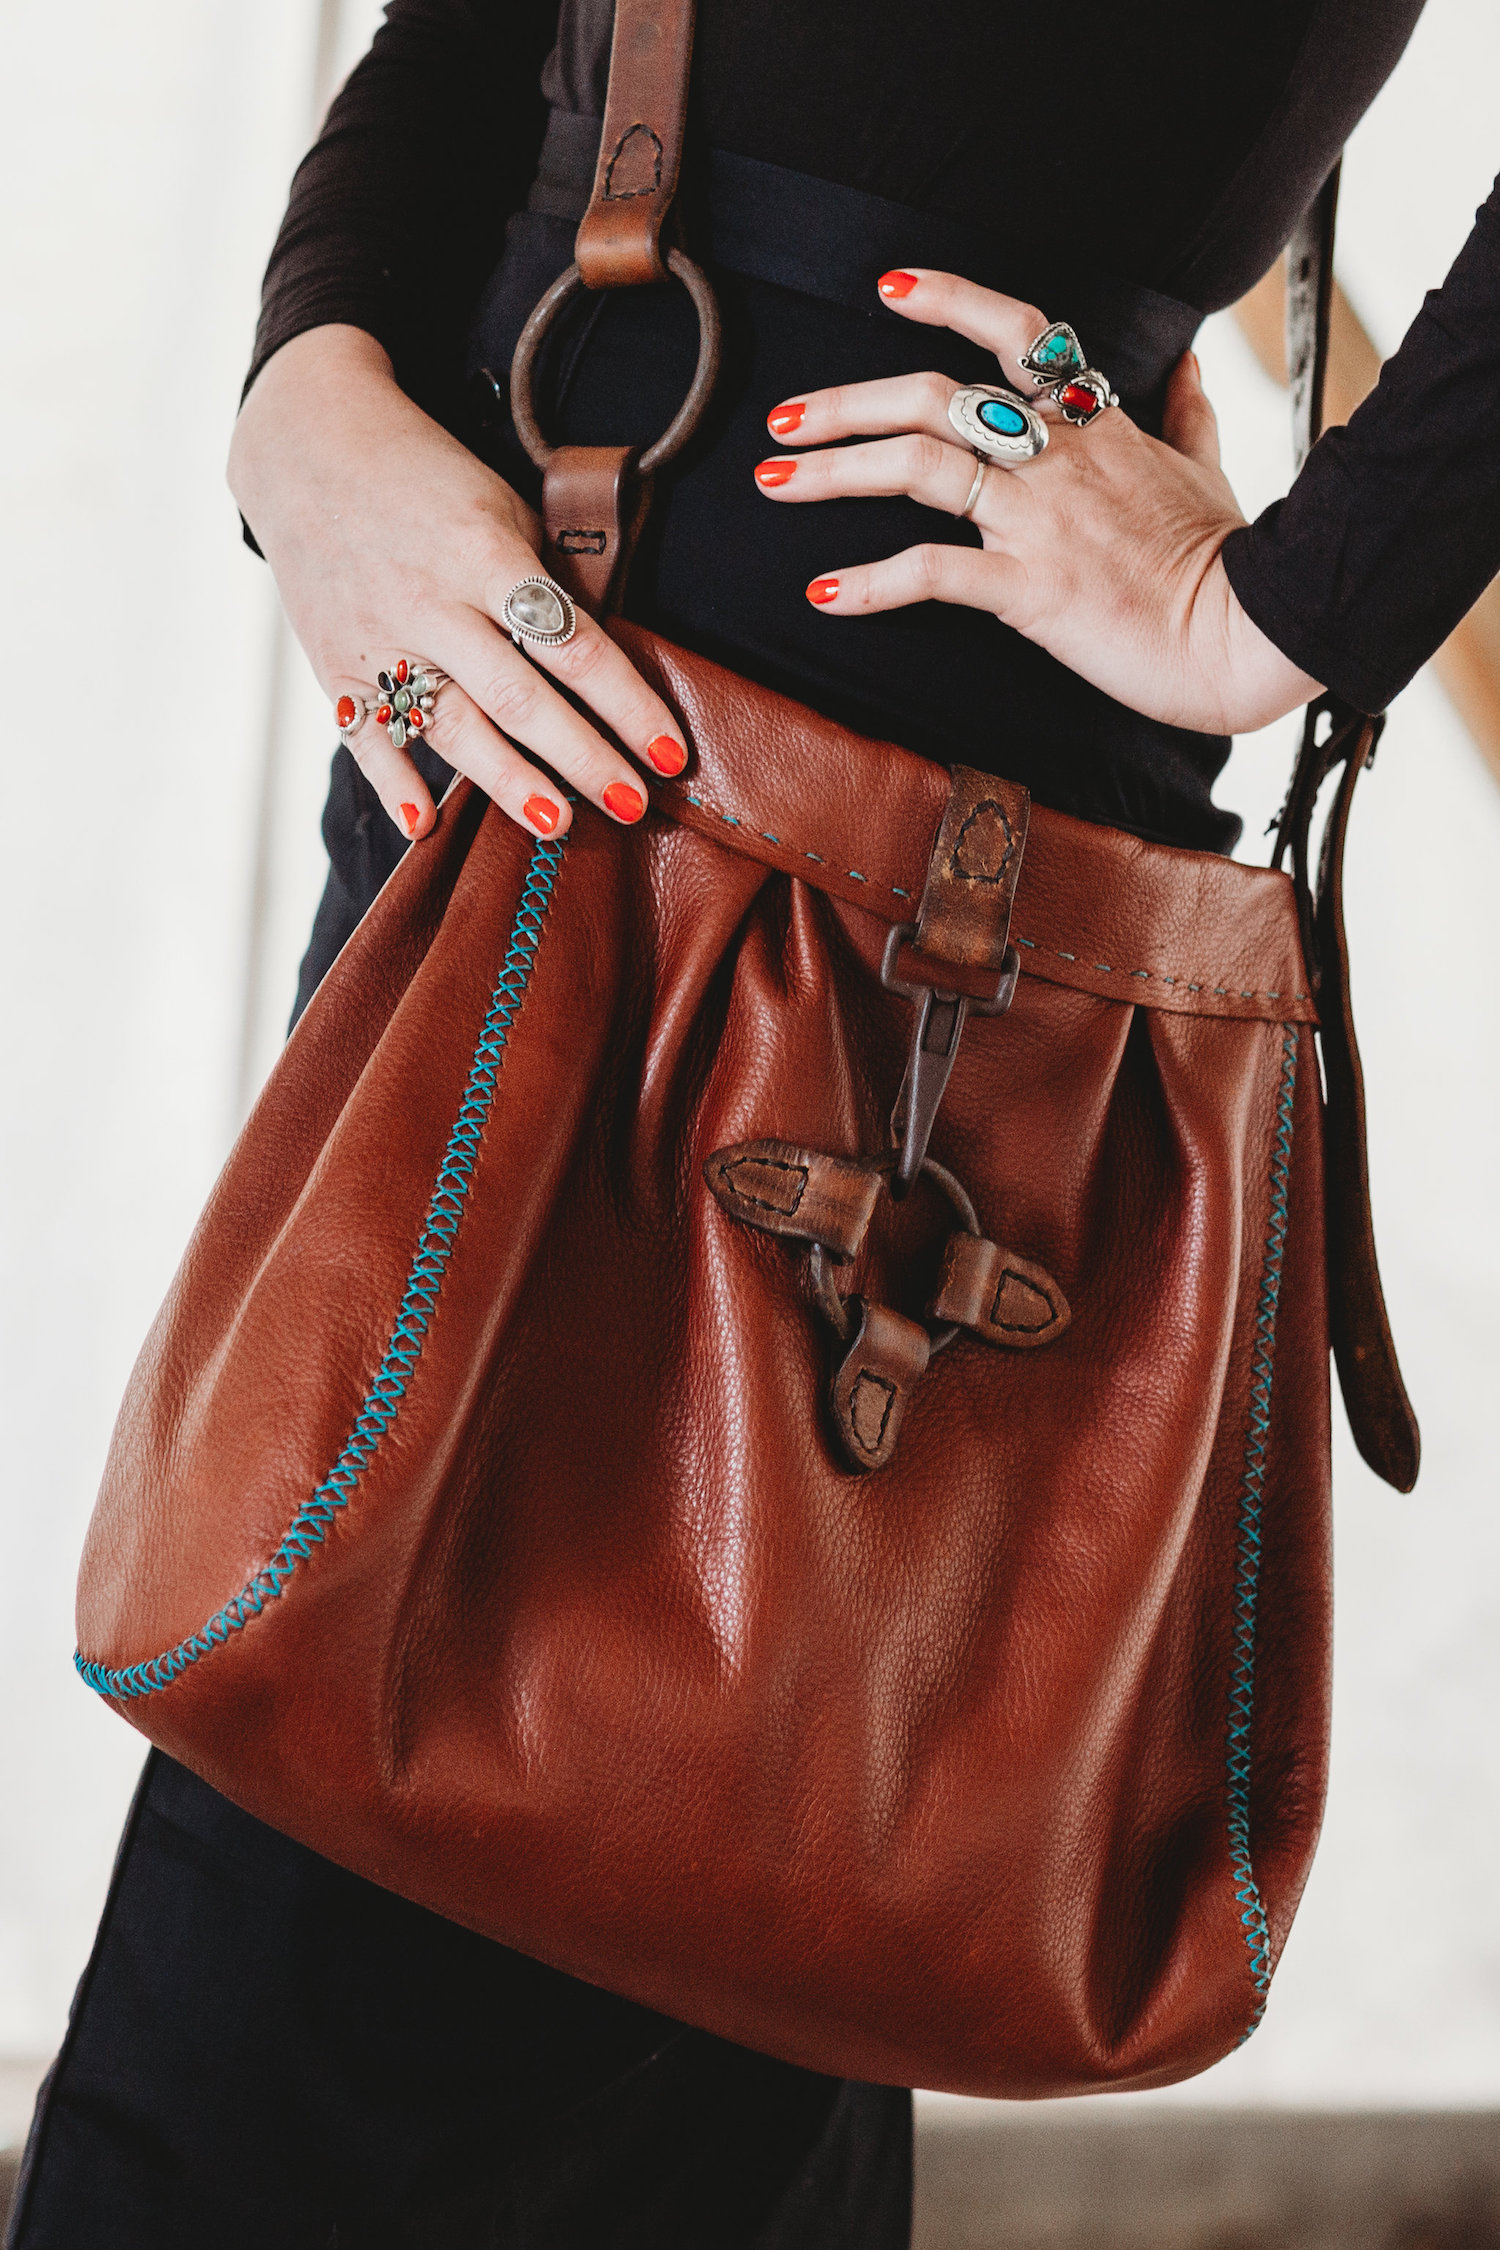 telluride_leather_bag_4_1500 copy.jpg